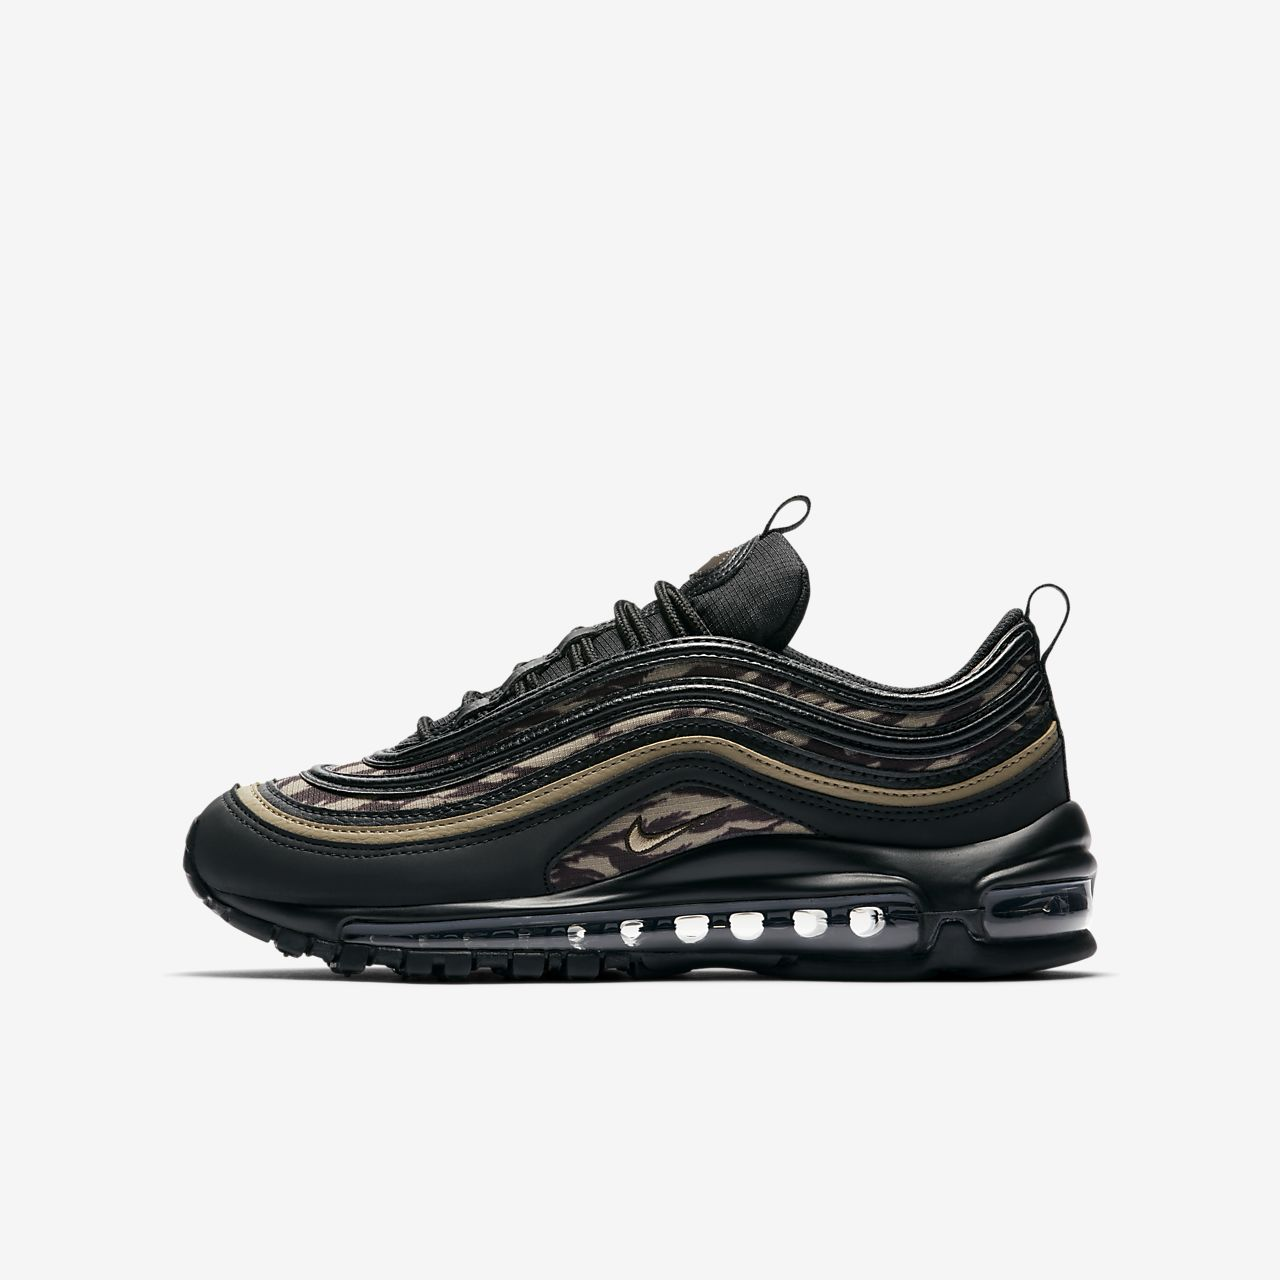 Nike Air Max 97 (Cobblestone & White) END.